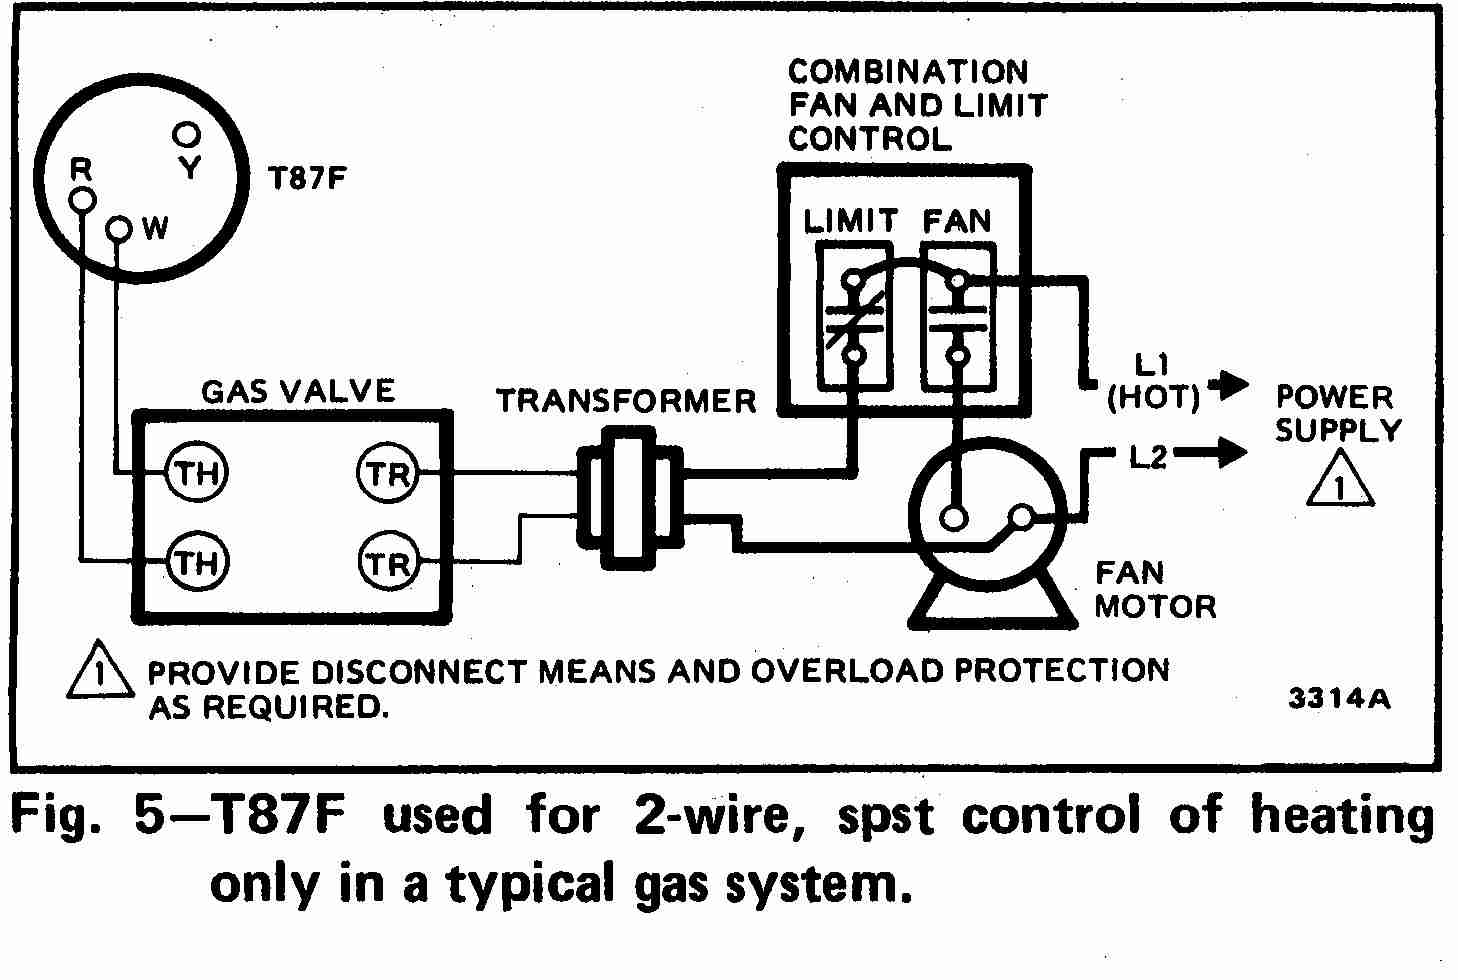 TT_T87F_0002_2Wg_DJF dayton thermostat wiring diagram rv furnace wiring diagrams LuxPro Thermostat Manual at crackthecode.co